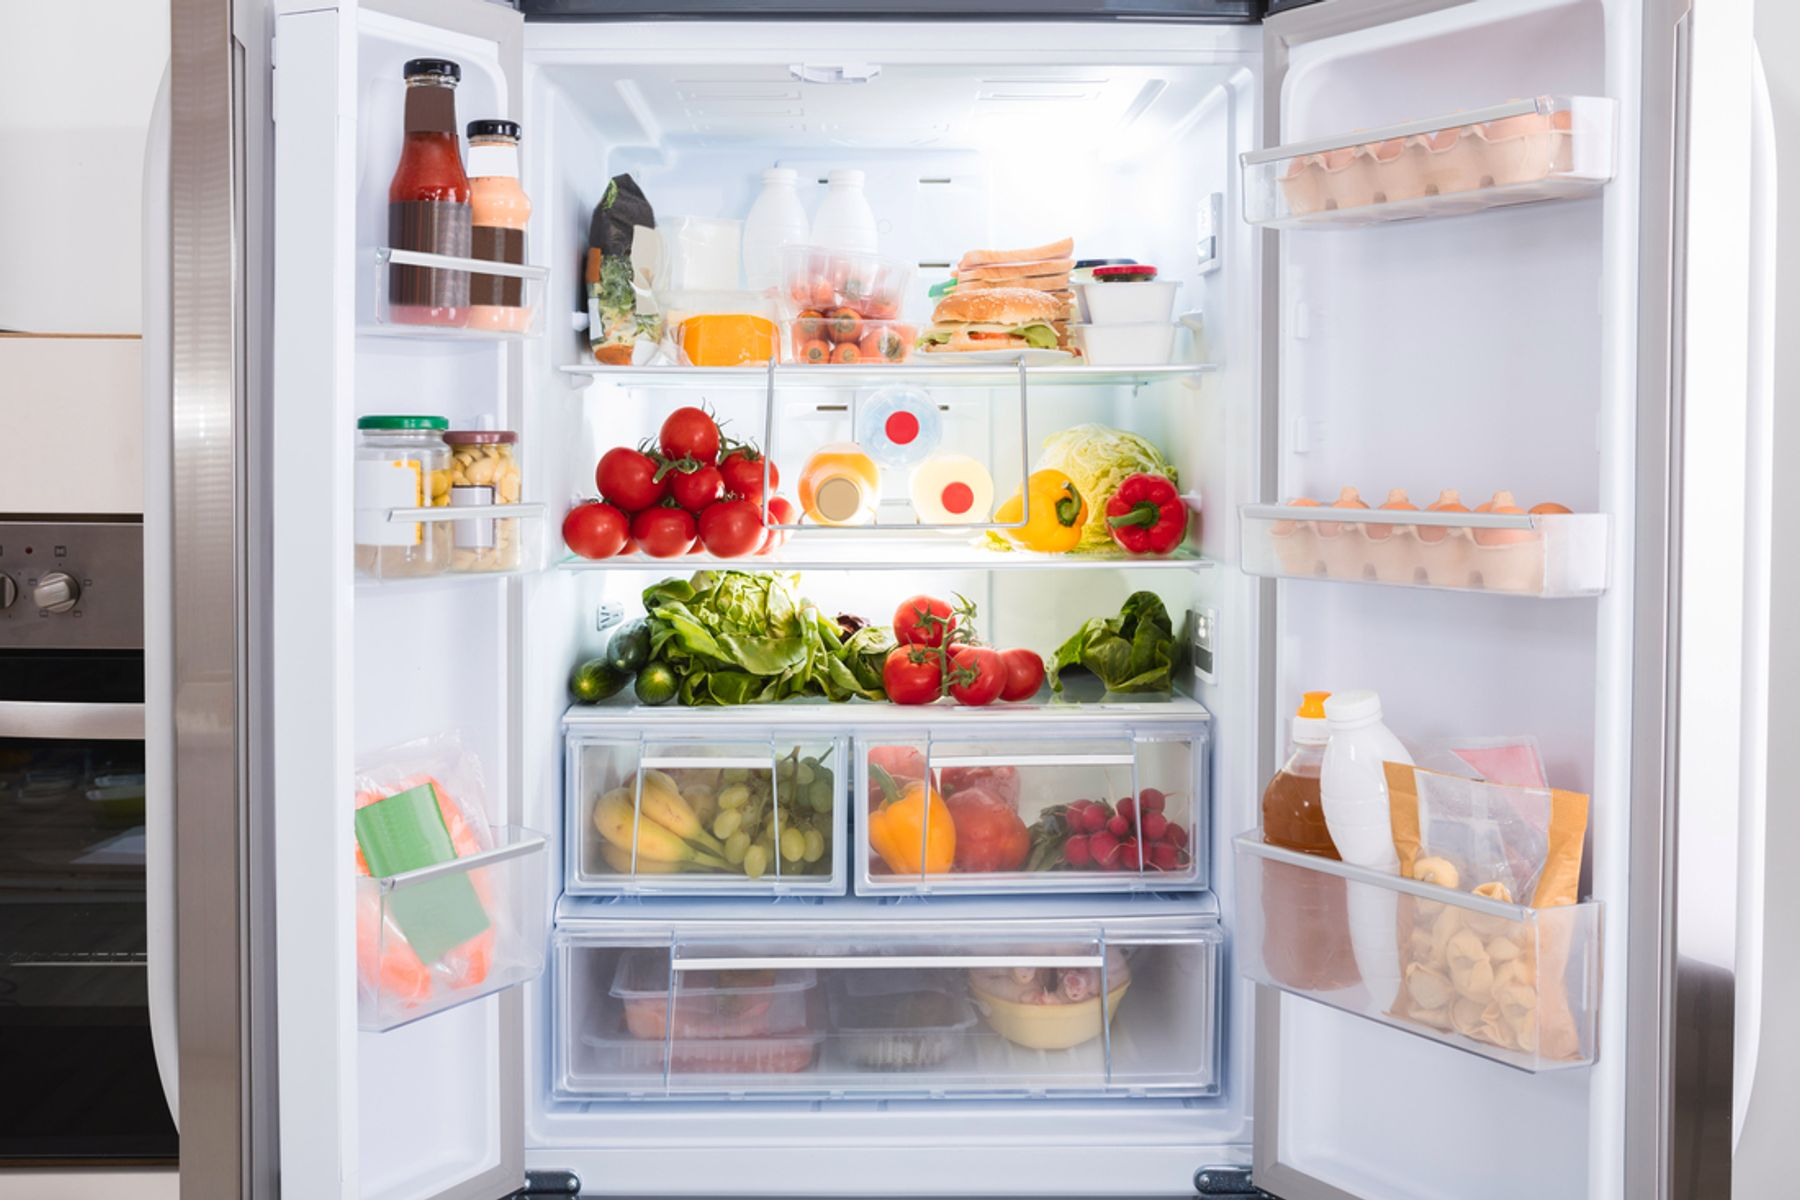 Image of refrigerator with various foods